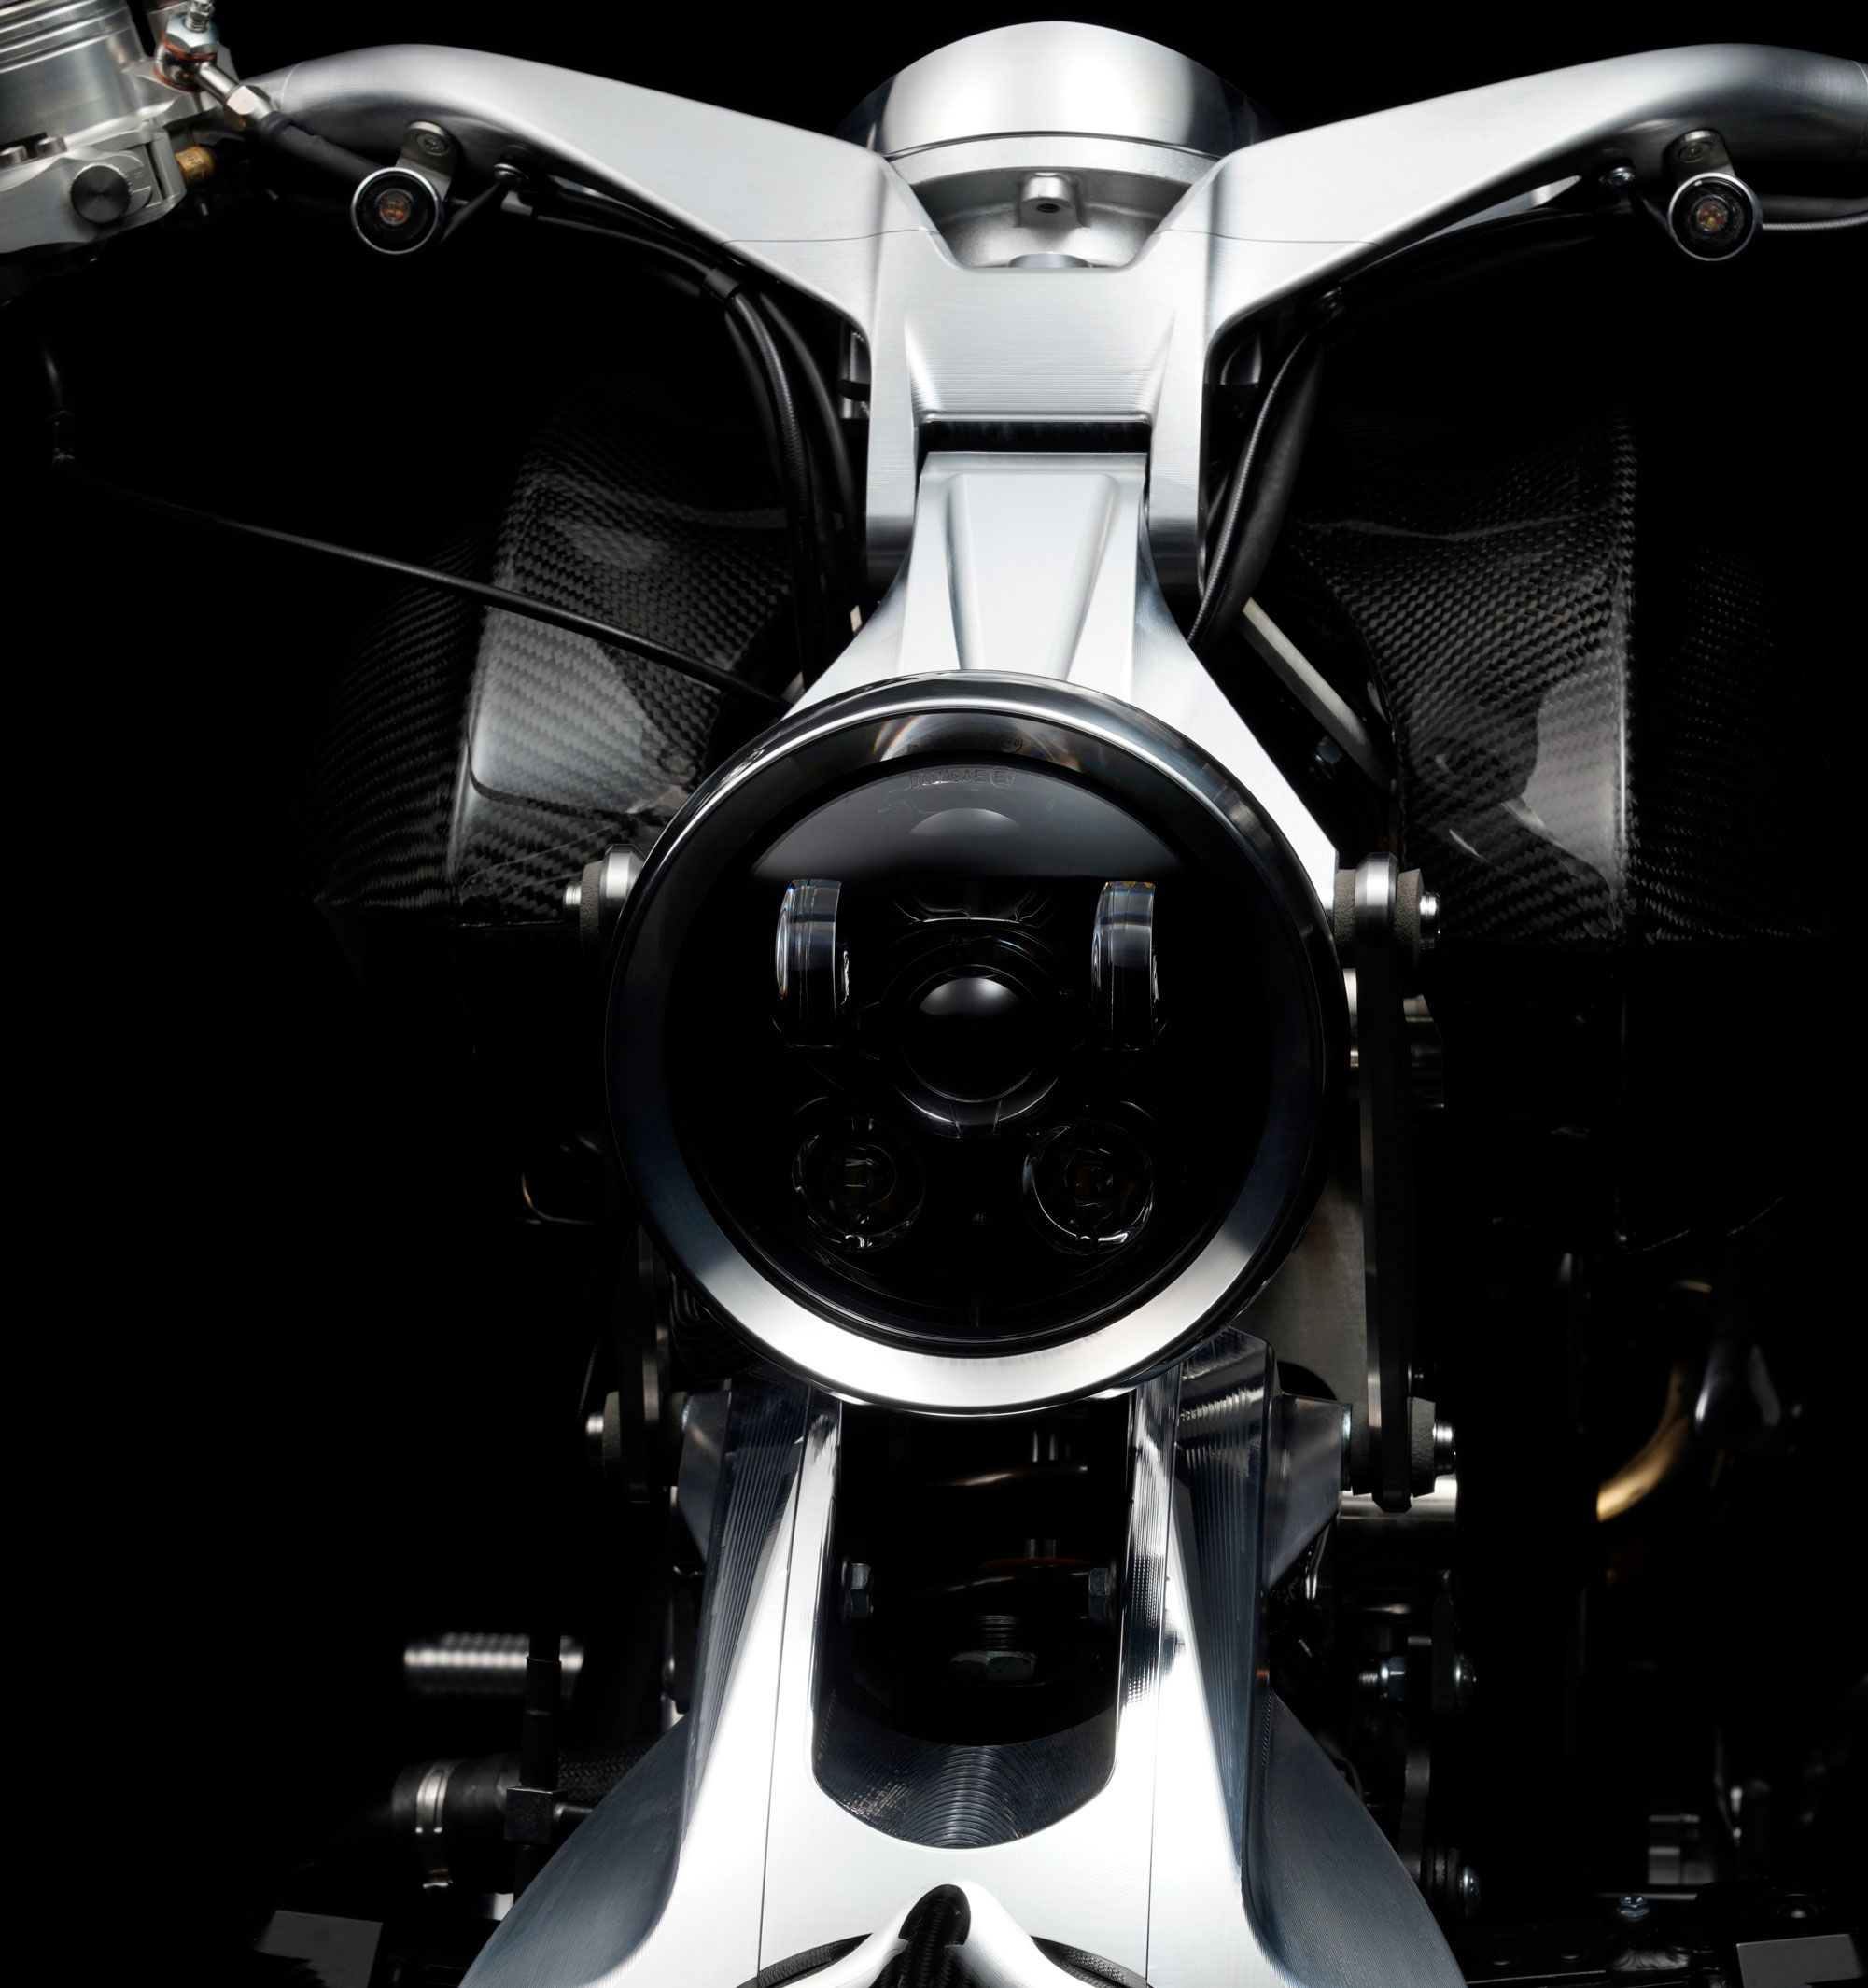 Aluminum components and details bring weight down to a superlight 440 pounds. The look is definitely futuristic from this angle.